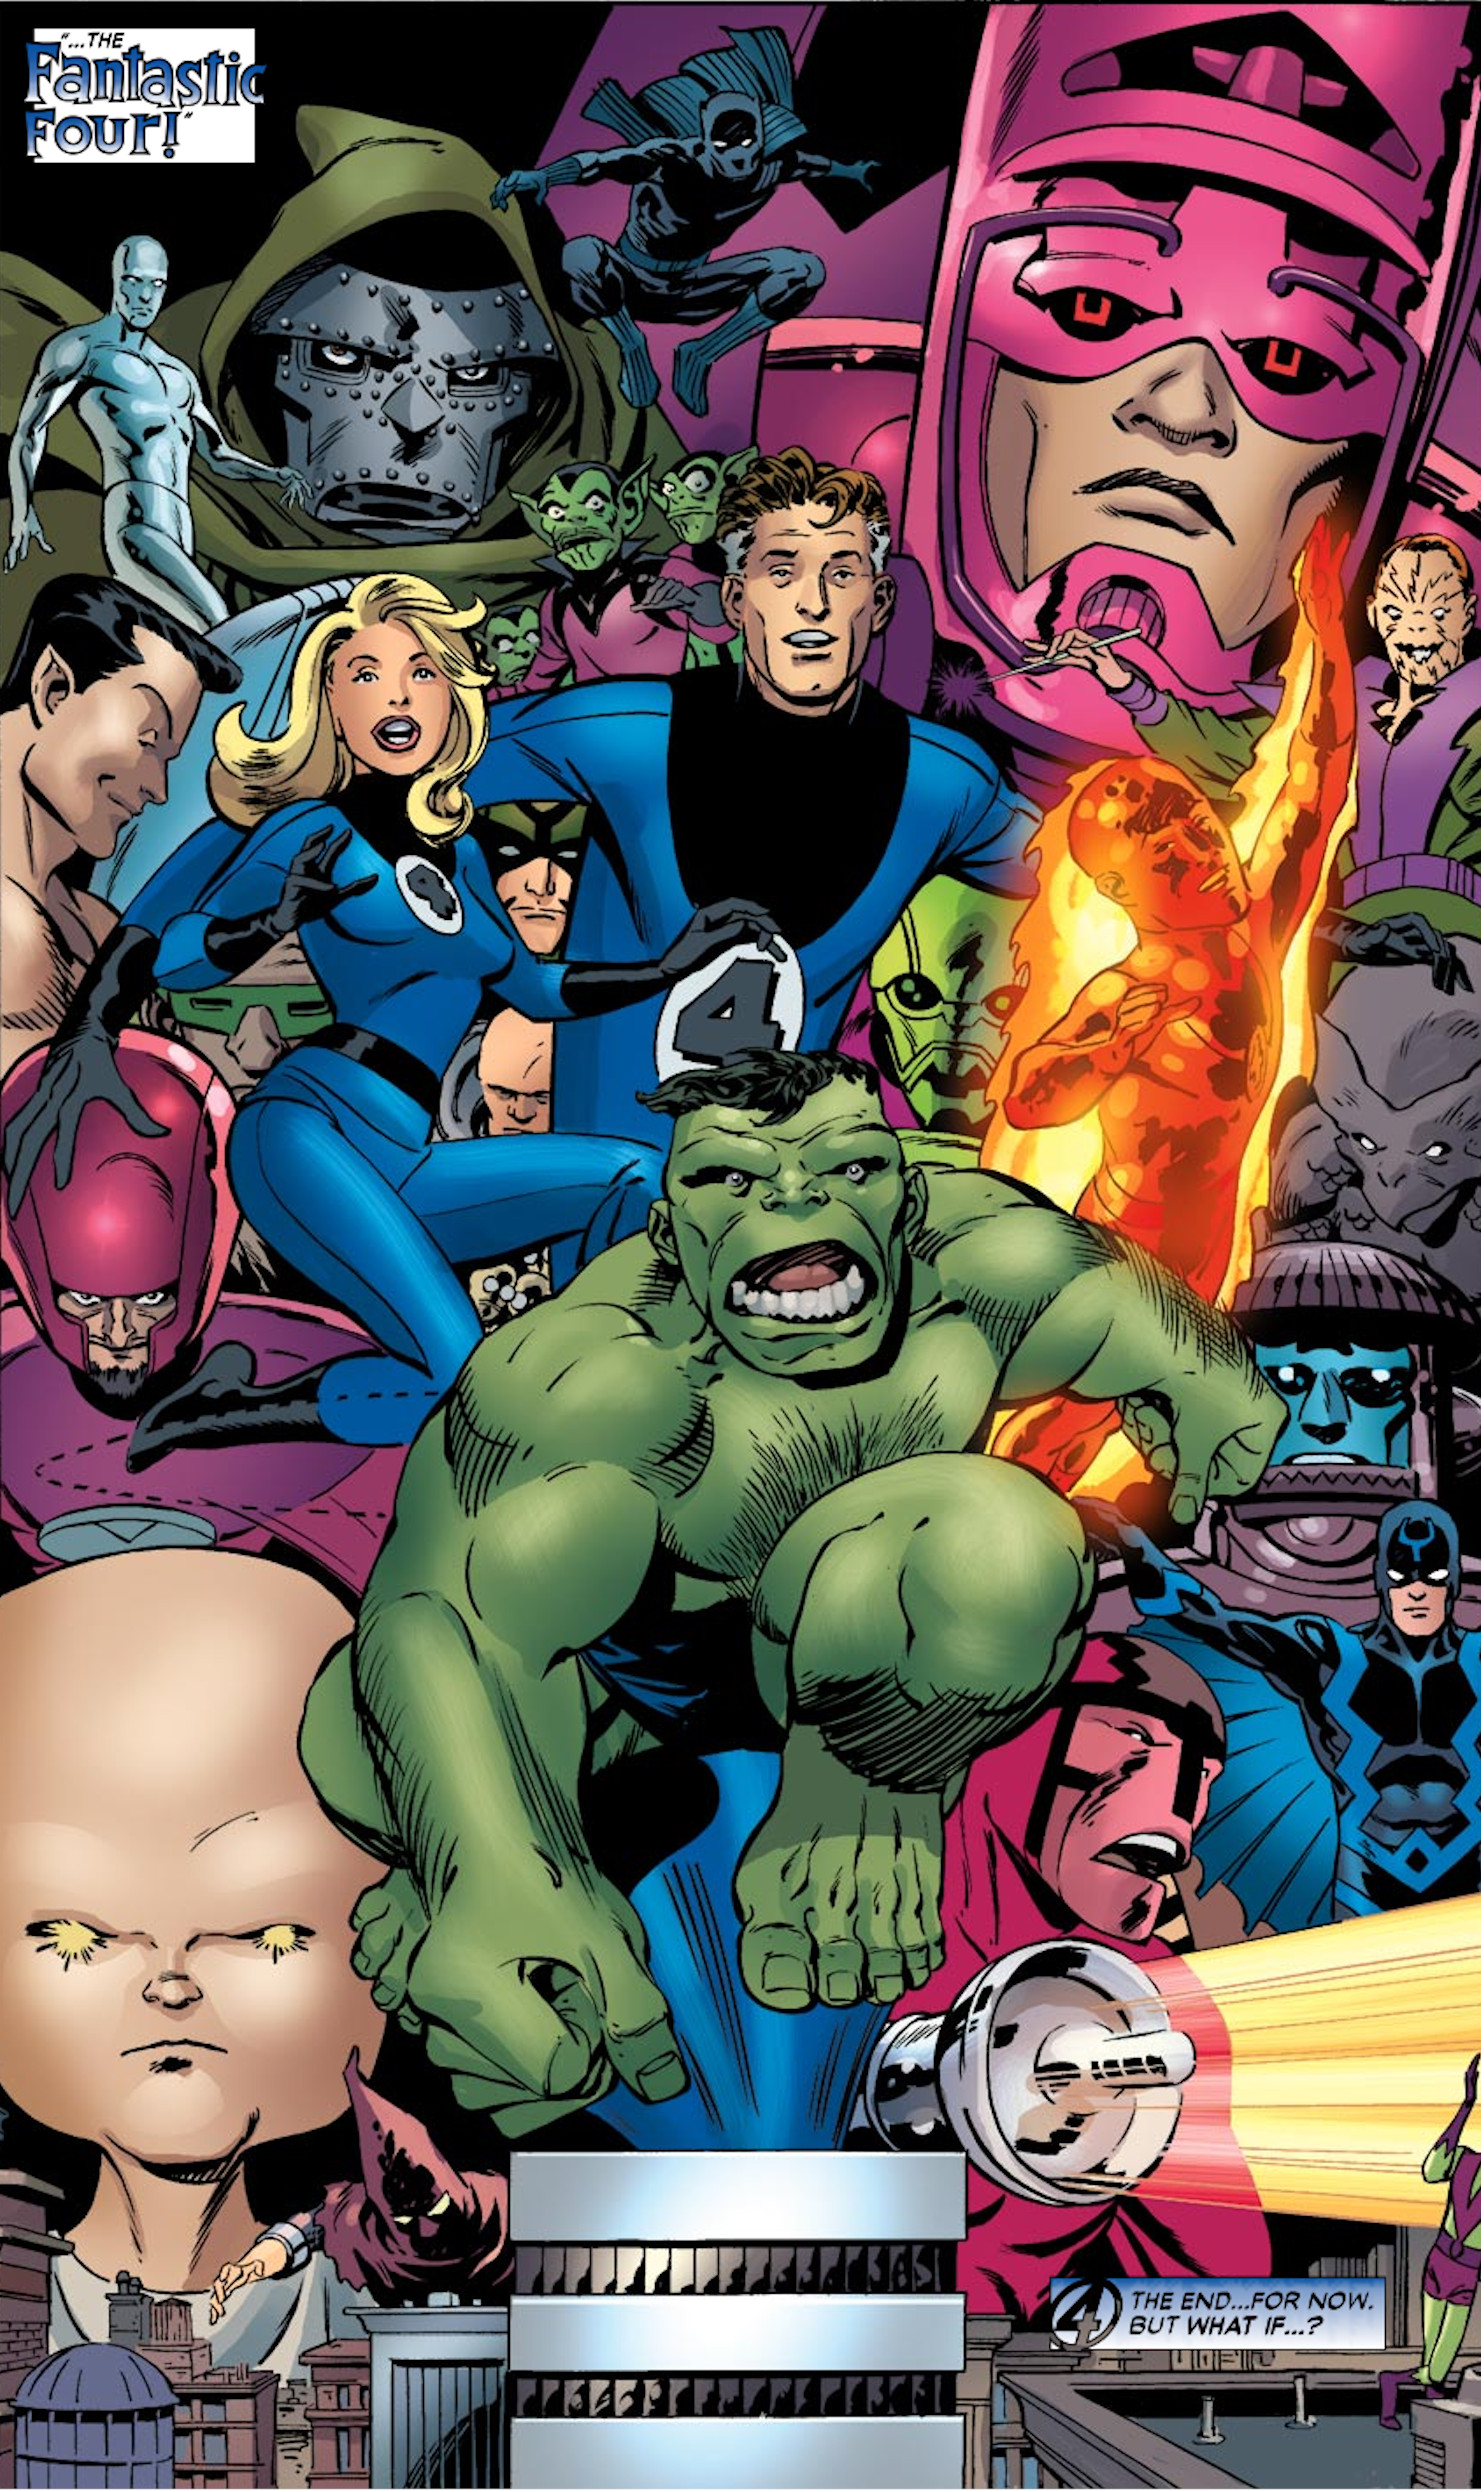 Fantastic Four (Earth-523003)